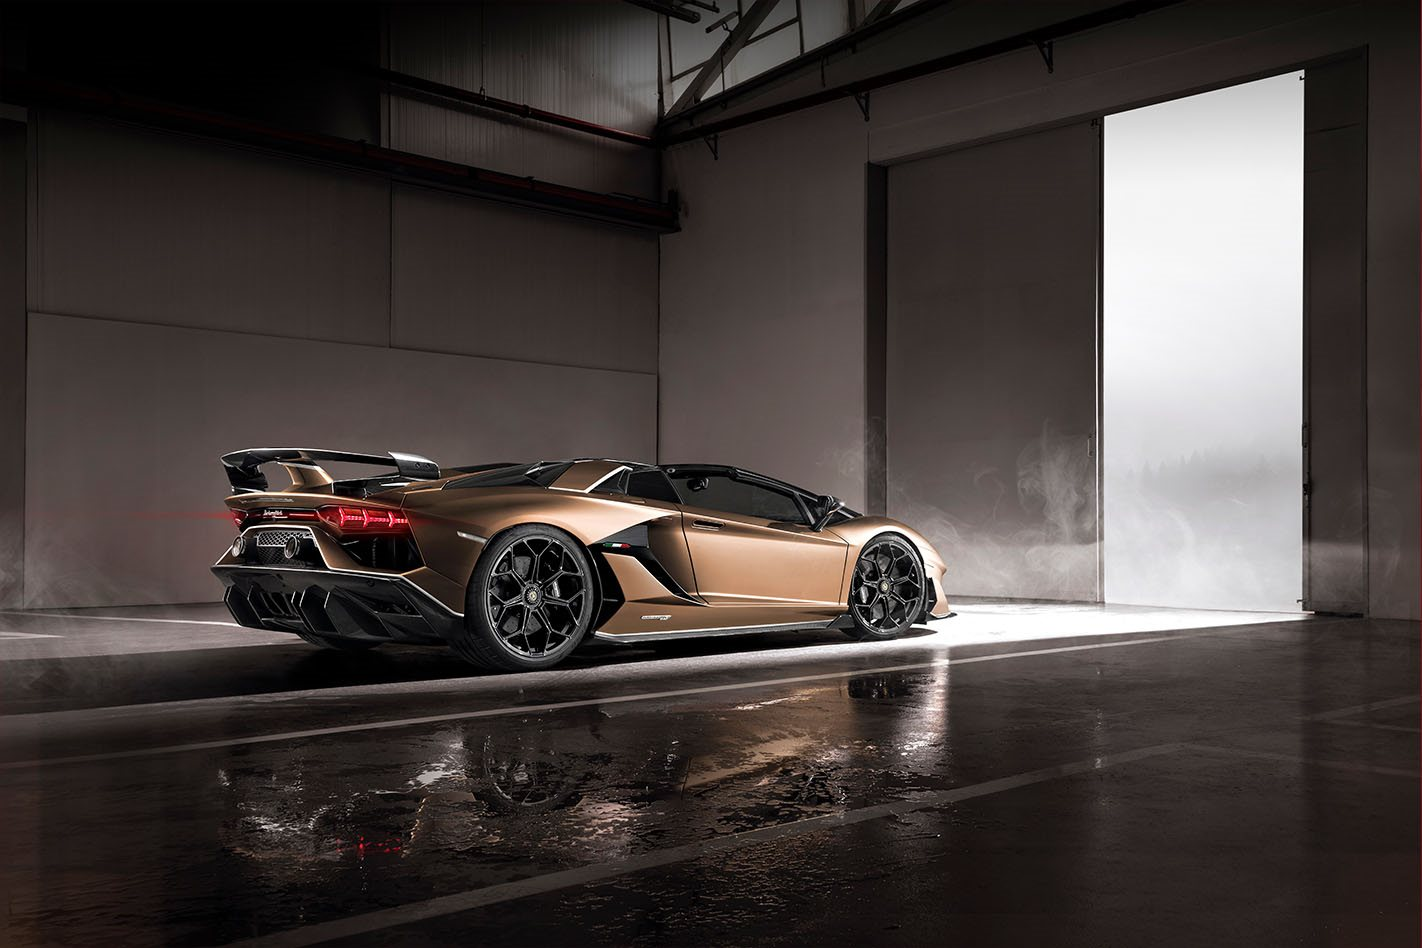 Lamborghini V12 will live on, but it will become radically different